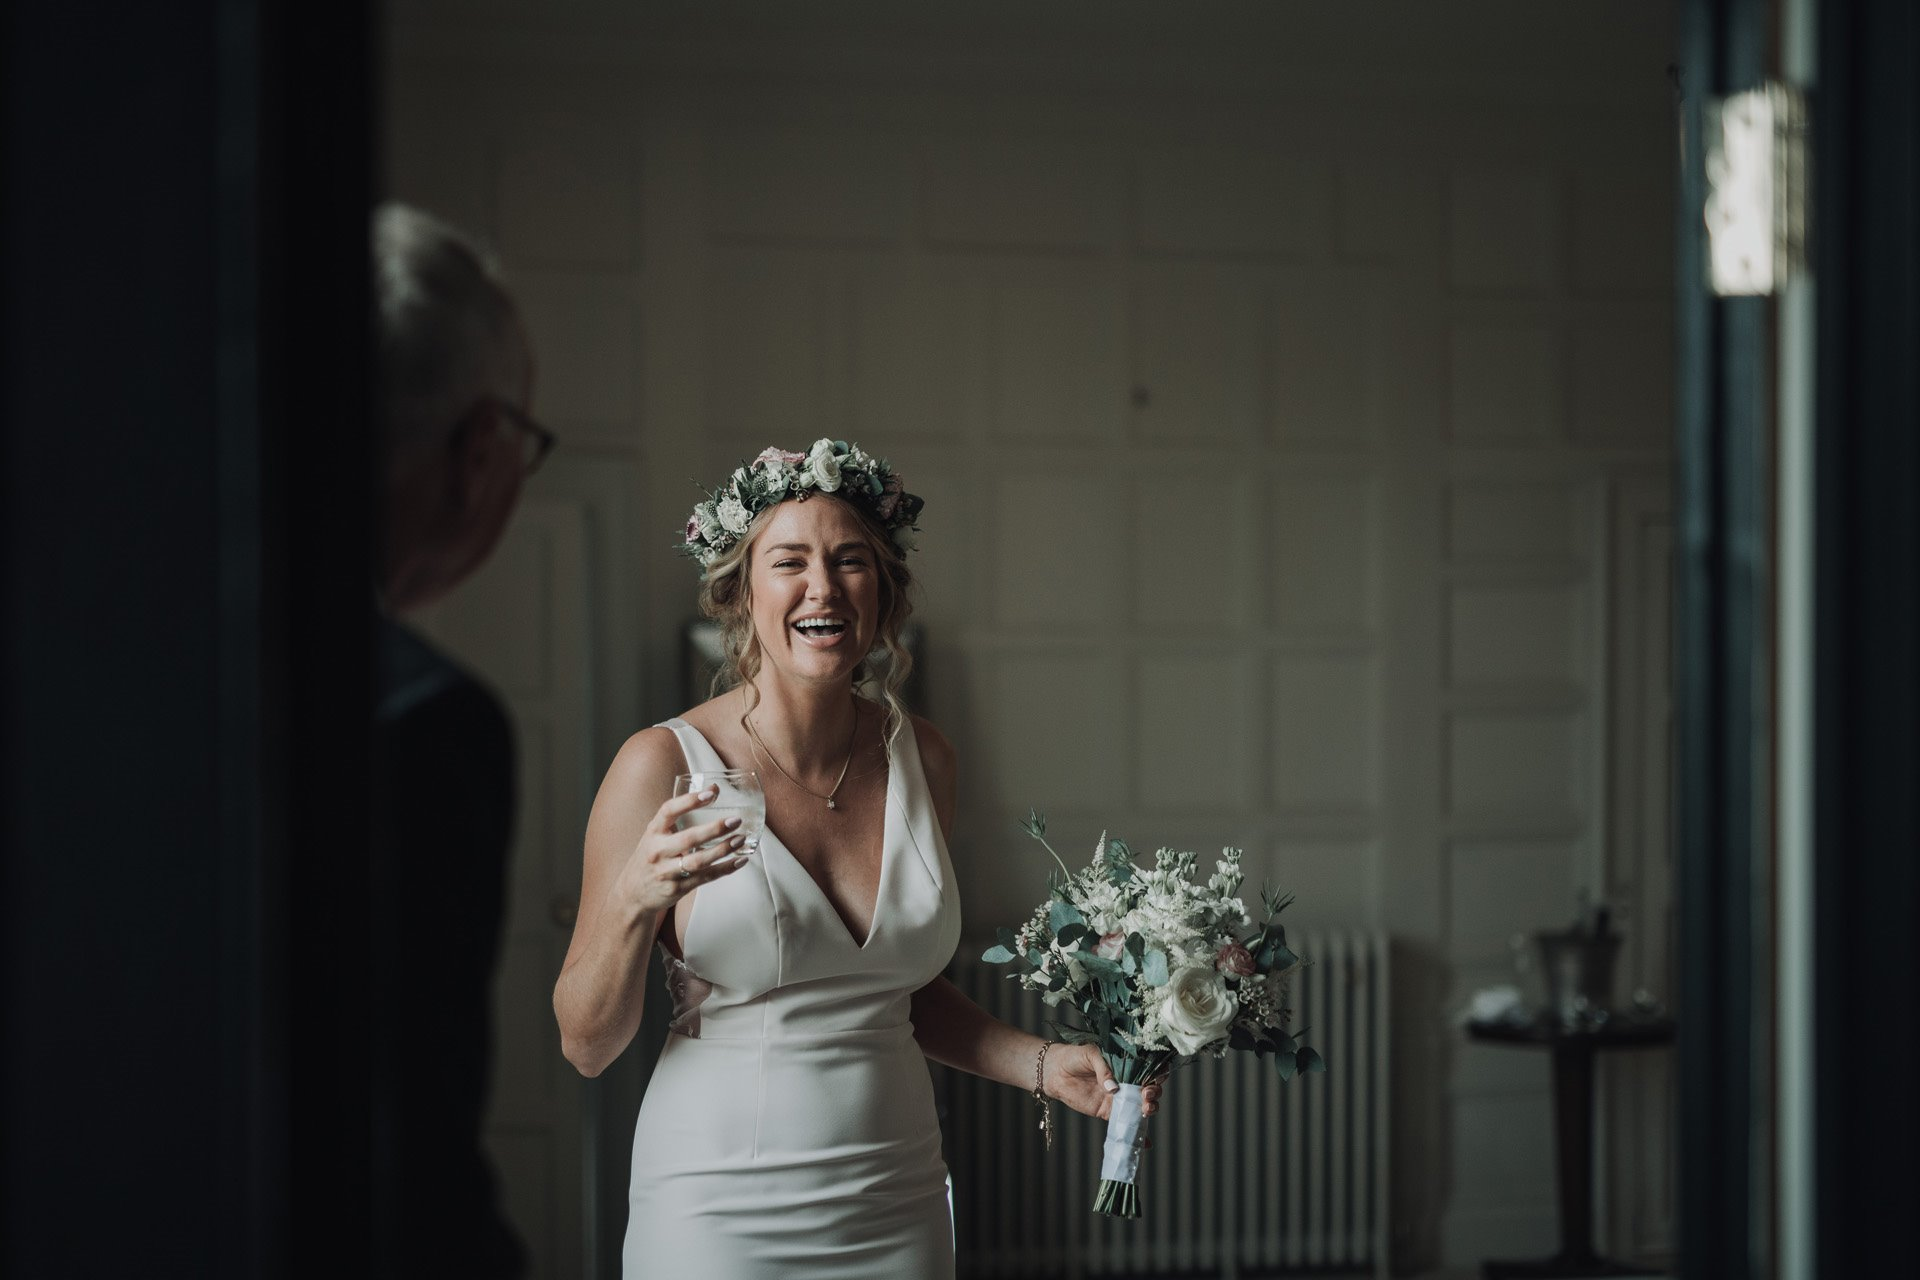 Happy bride laughs with bouquet and champagne wearing a flower crown on her micro wedding day during corona virus pandemic